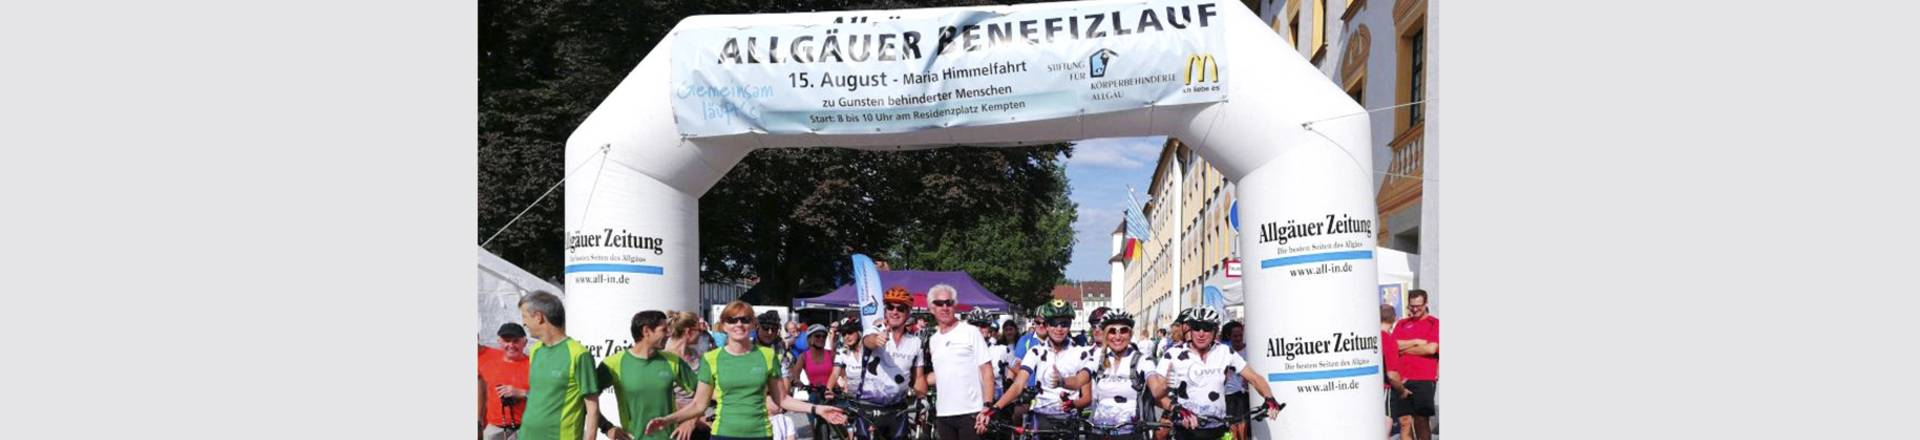 Run for charity - Allgäuer Benefizlauf